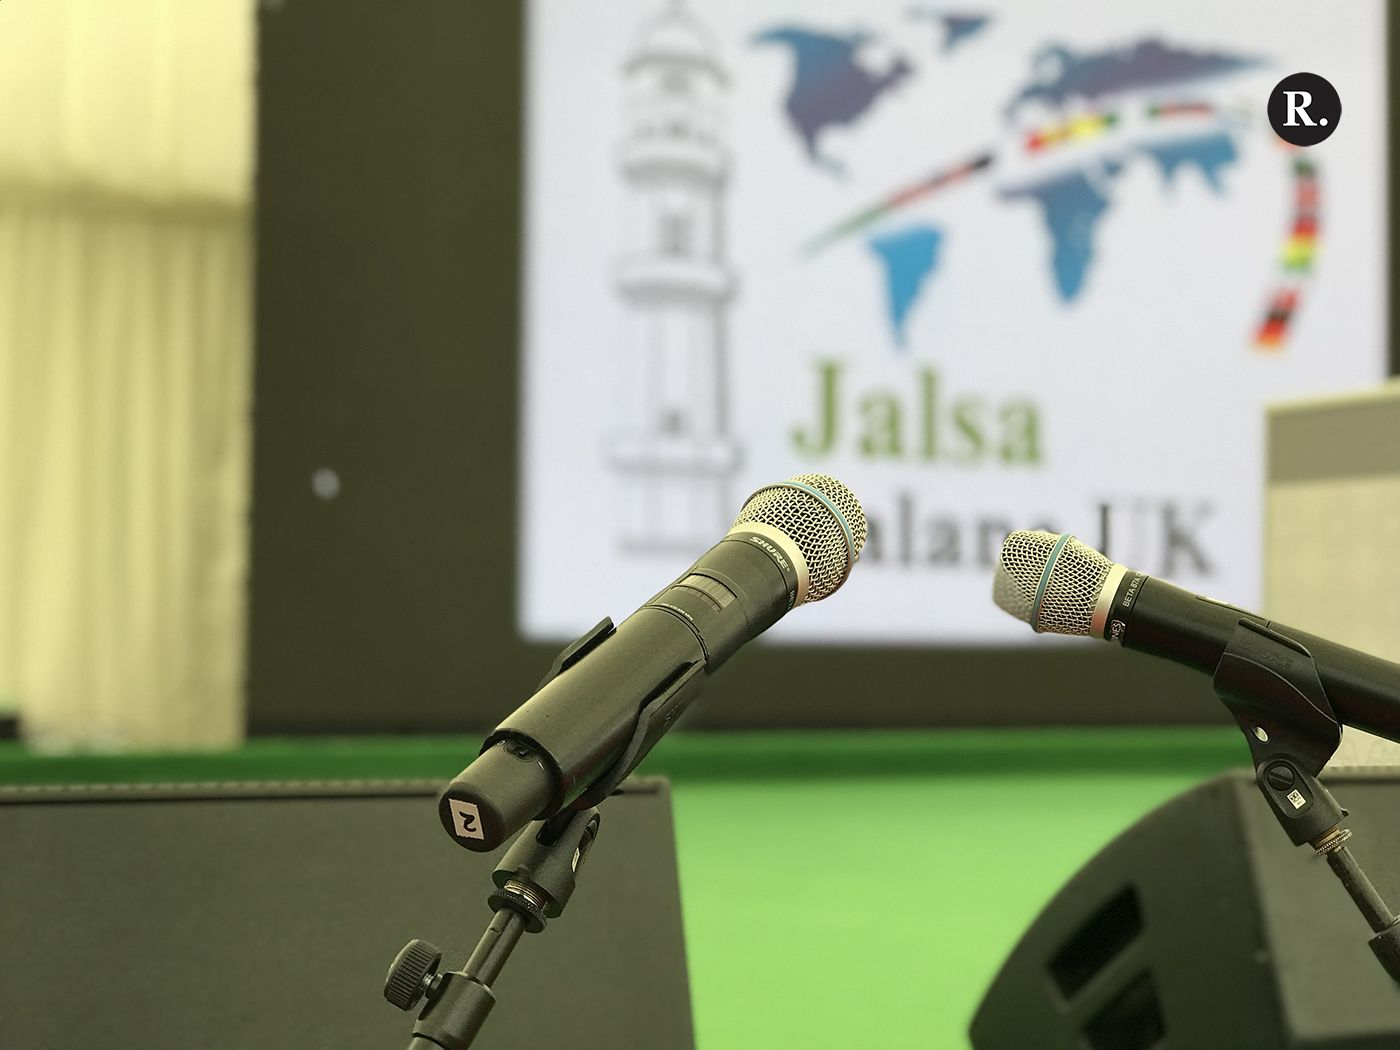 The Long-Awaited Trip to Jalsa Salana and Presenting My Poem to the Caliph